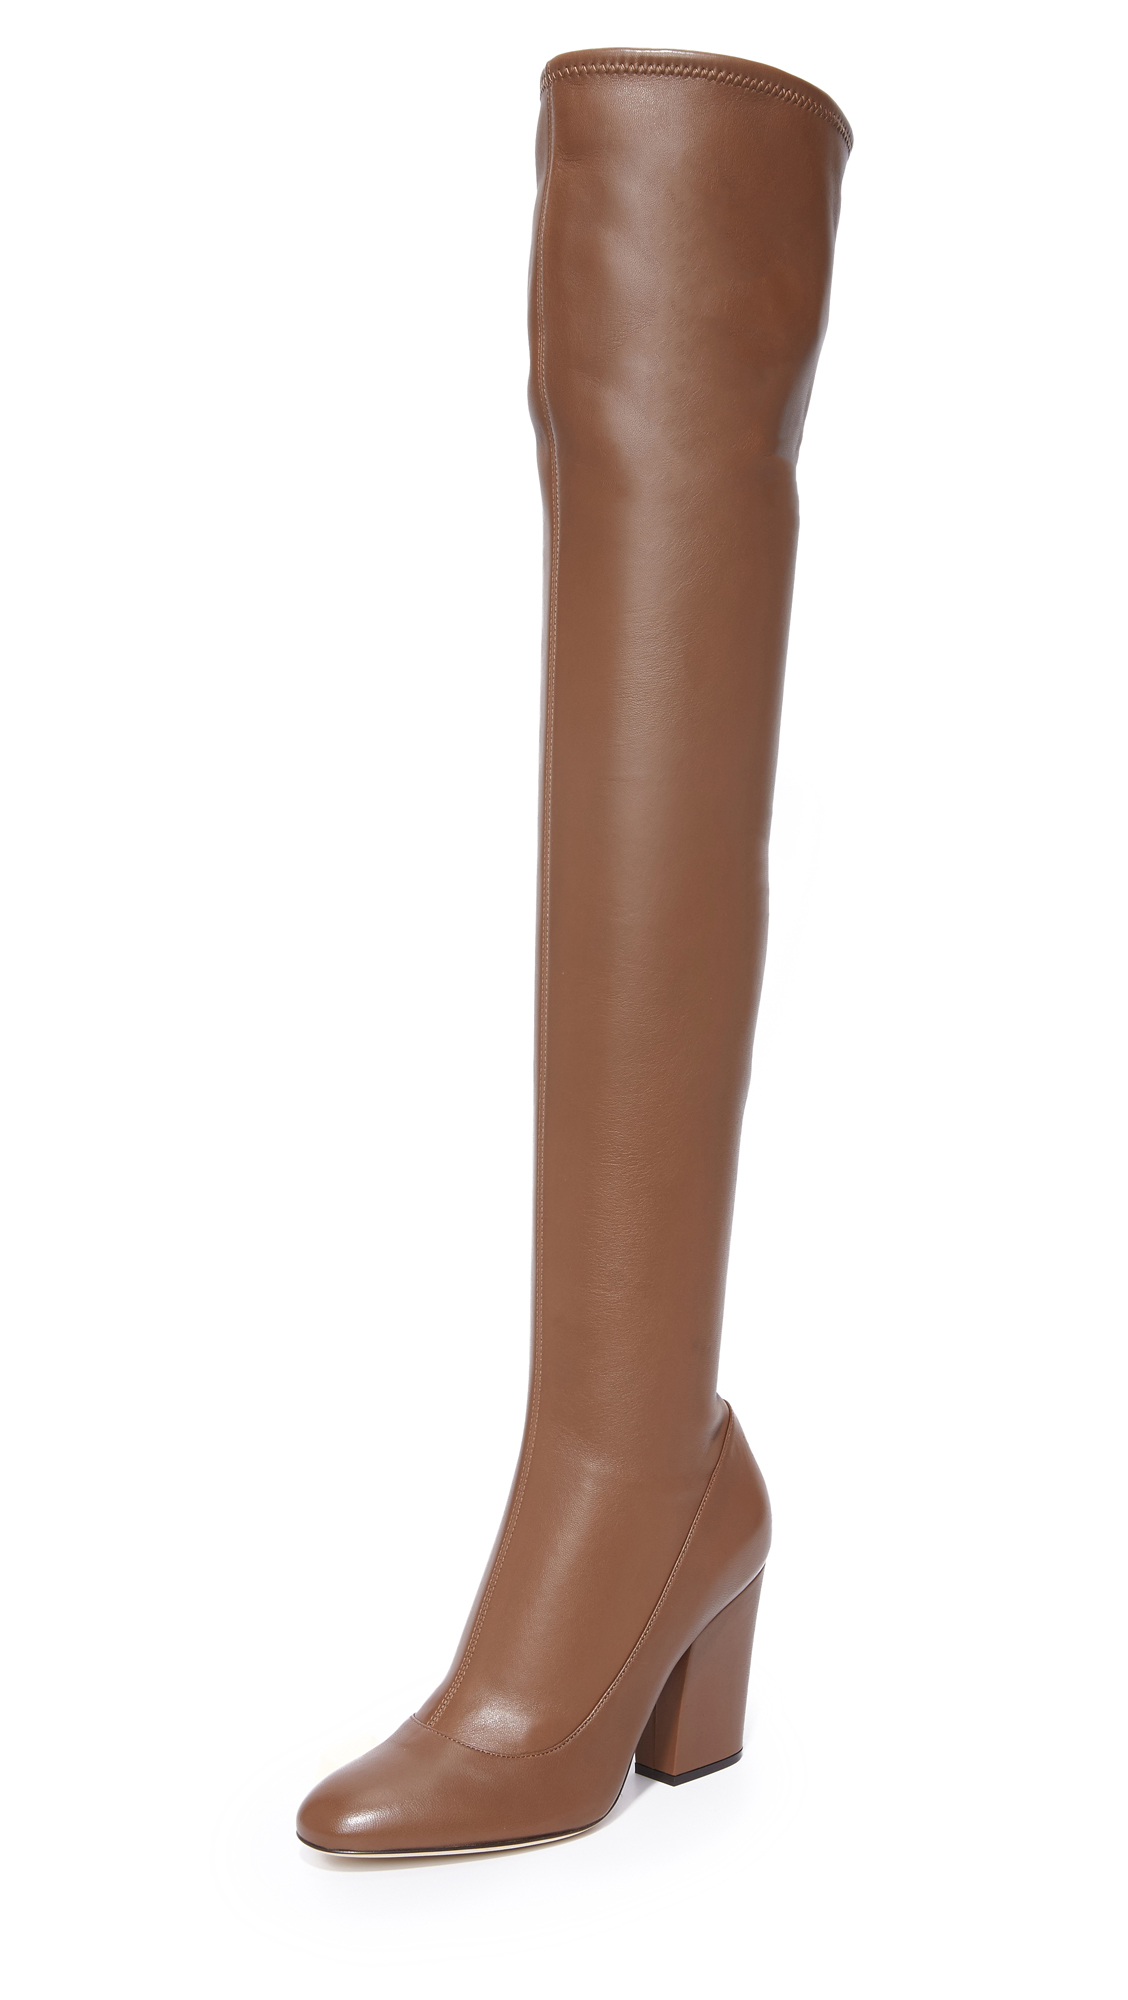 Sergio Rossi Knee High Boots - Tobacco